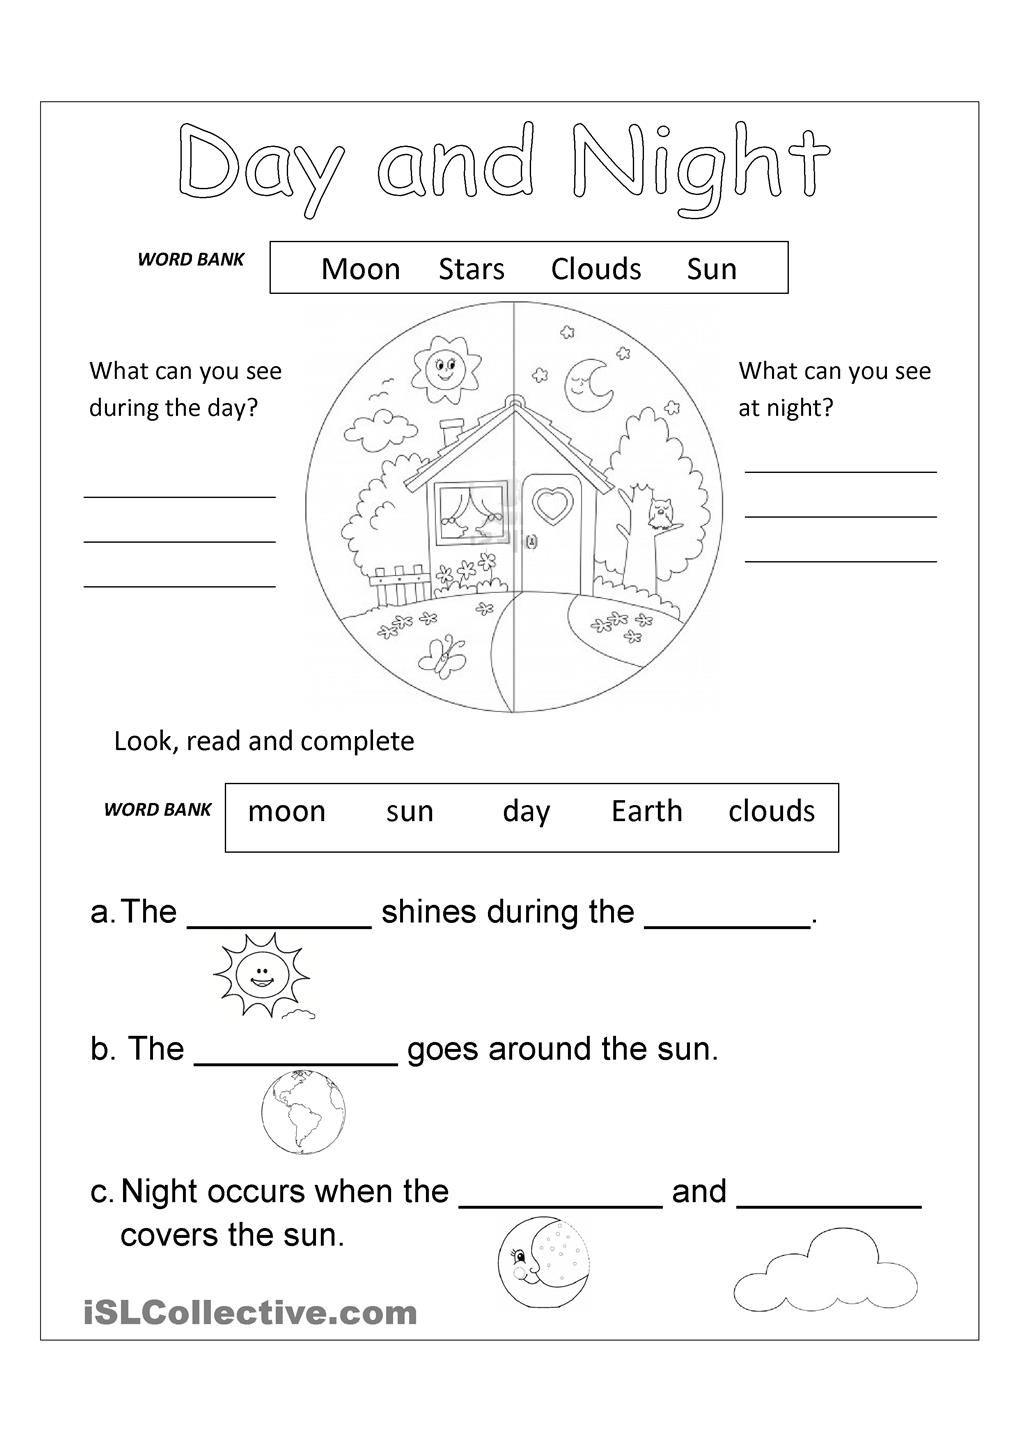 Day And Night Worksheets Davezan – Day and Night Worksheets for Kindergarten